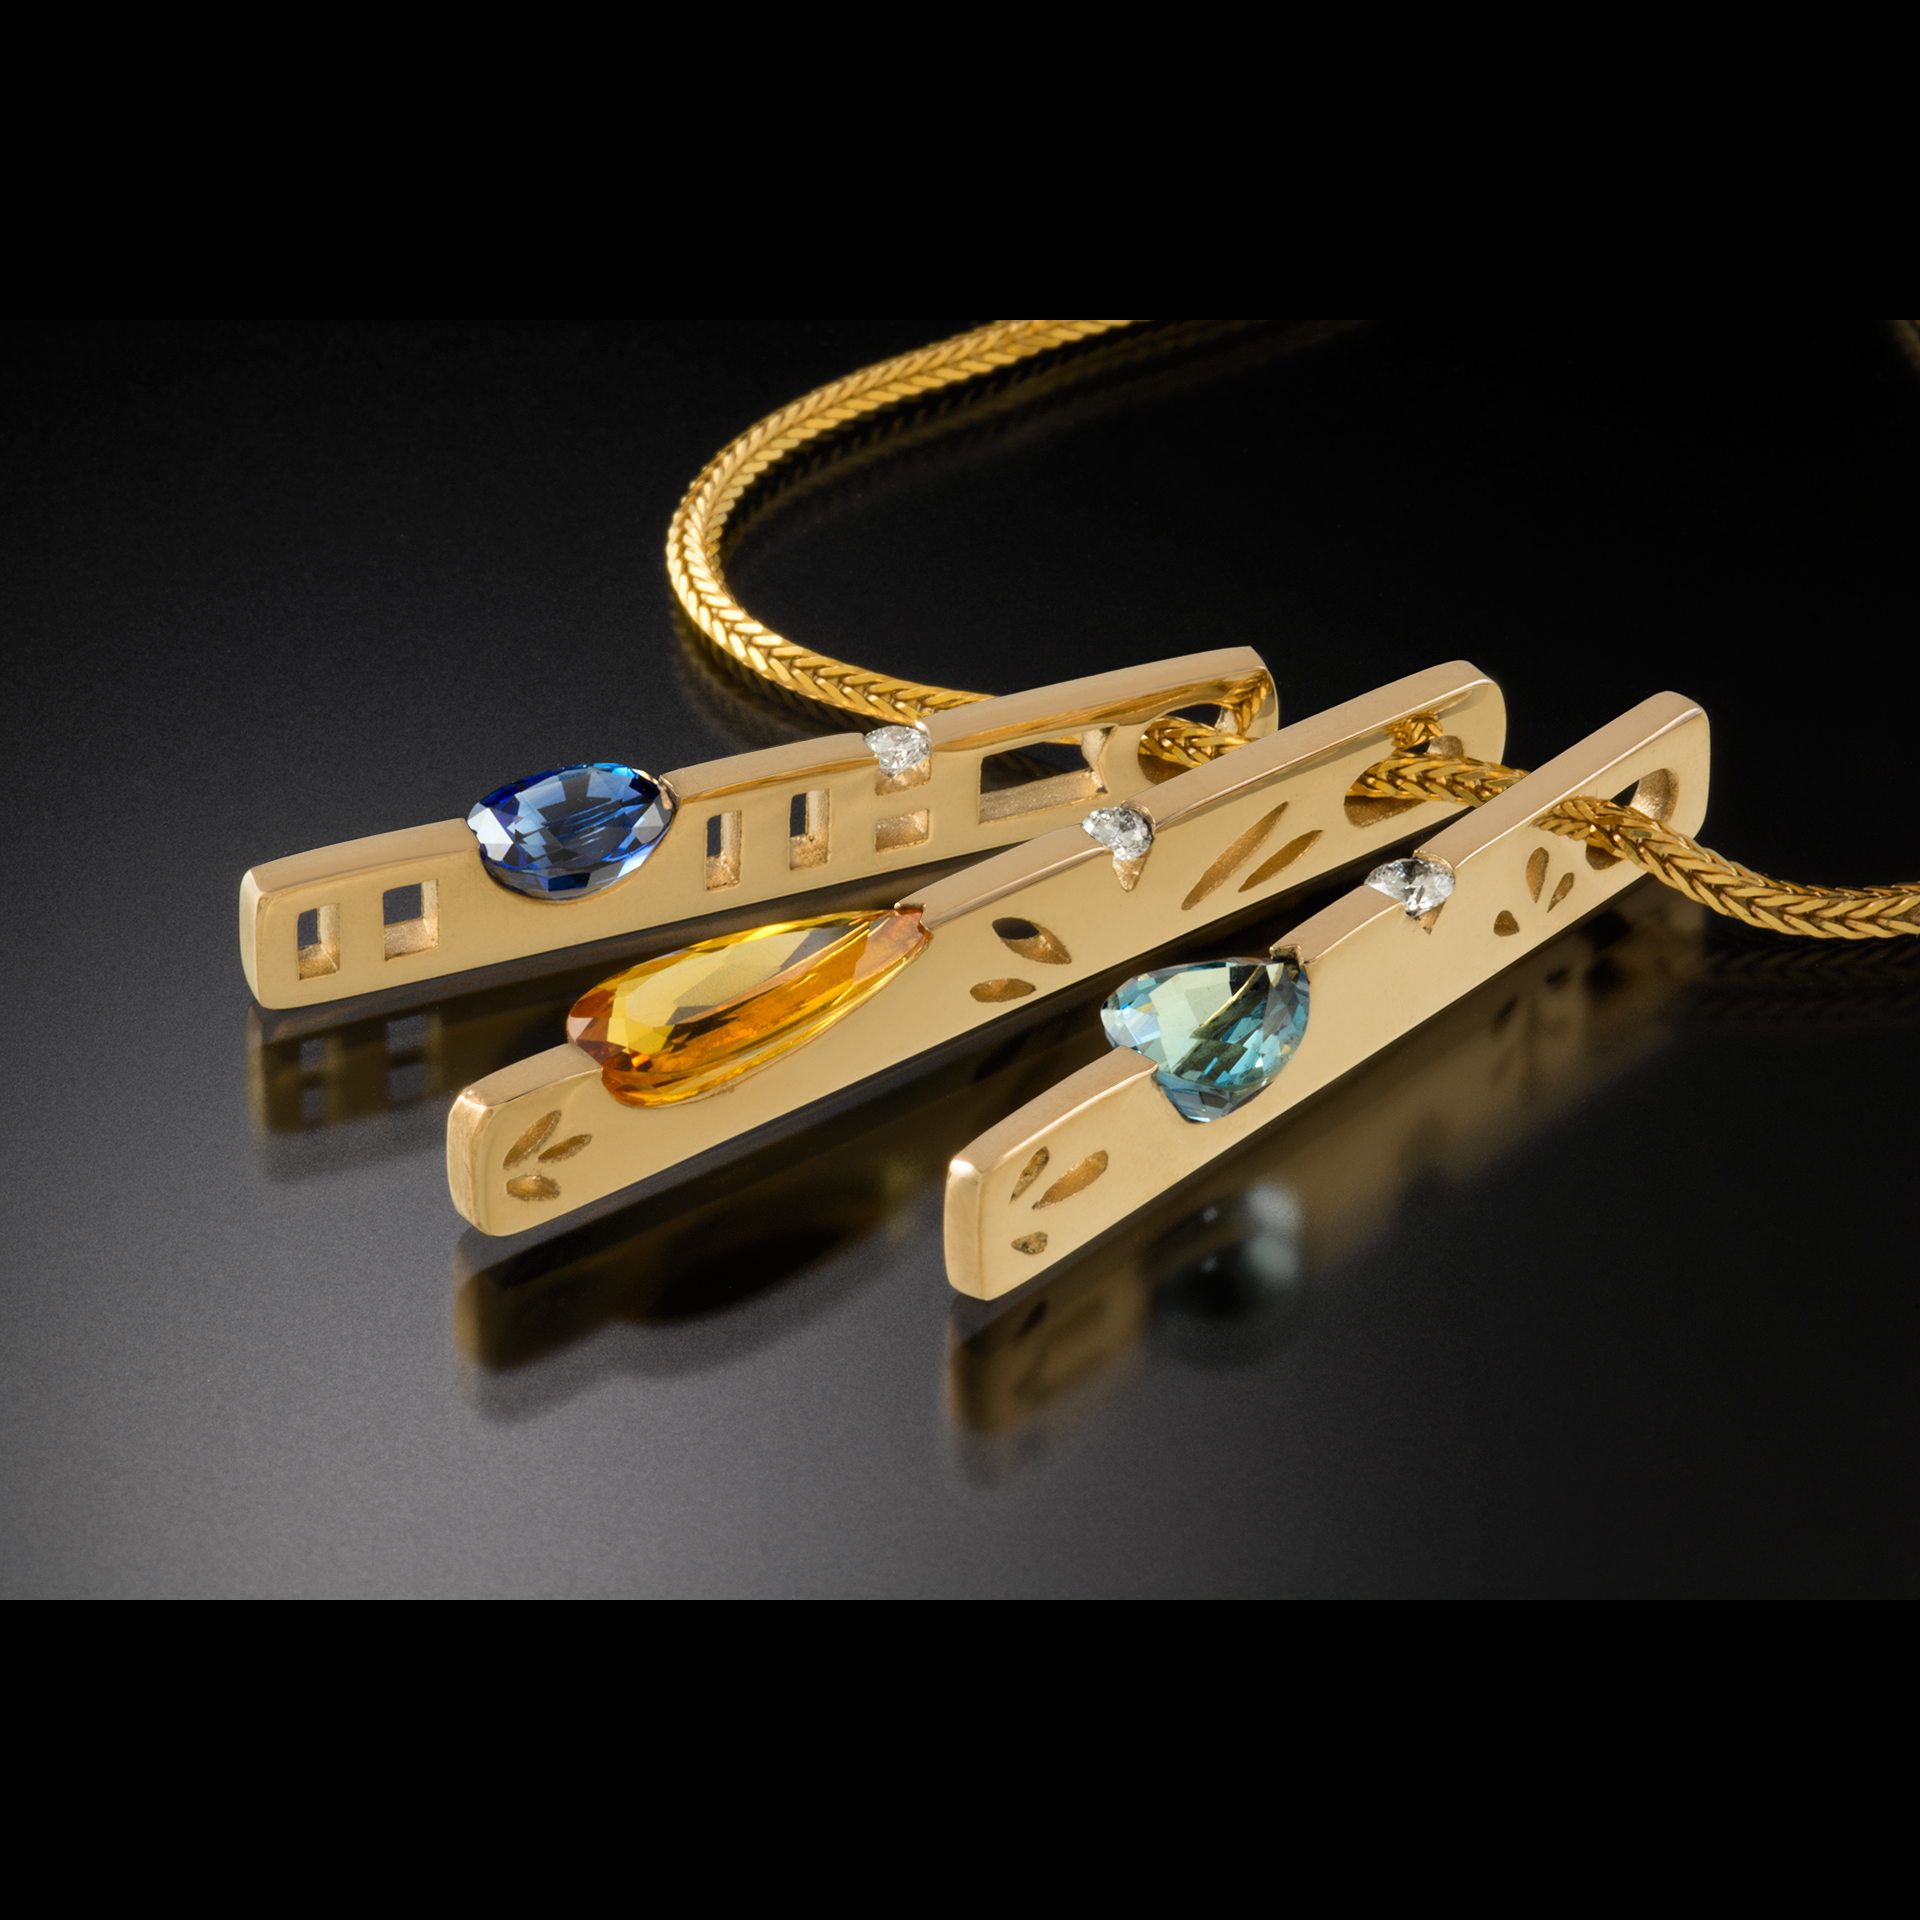 Berry Goldsmiths Scott J Berry Handcrafted custom 14K and 18K